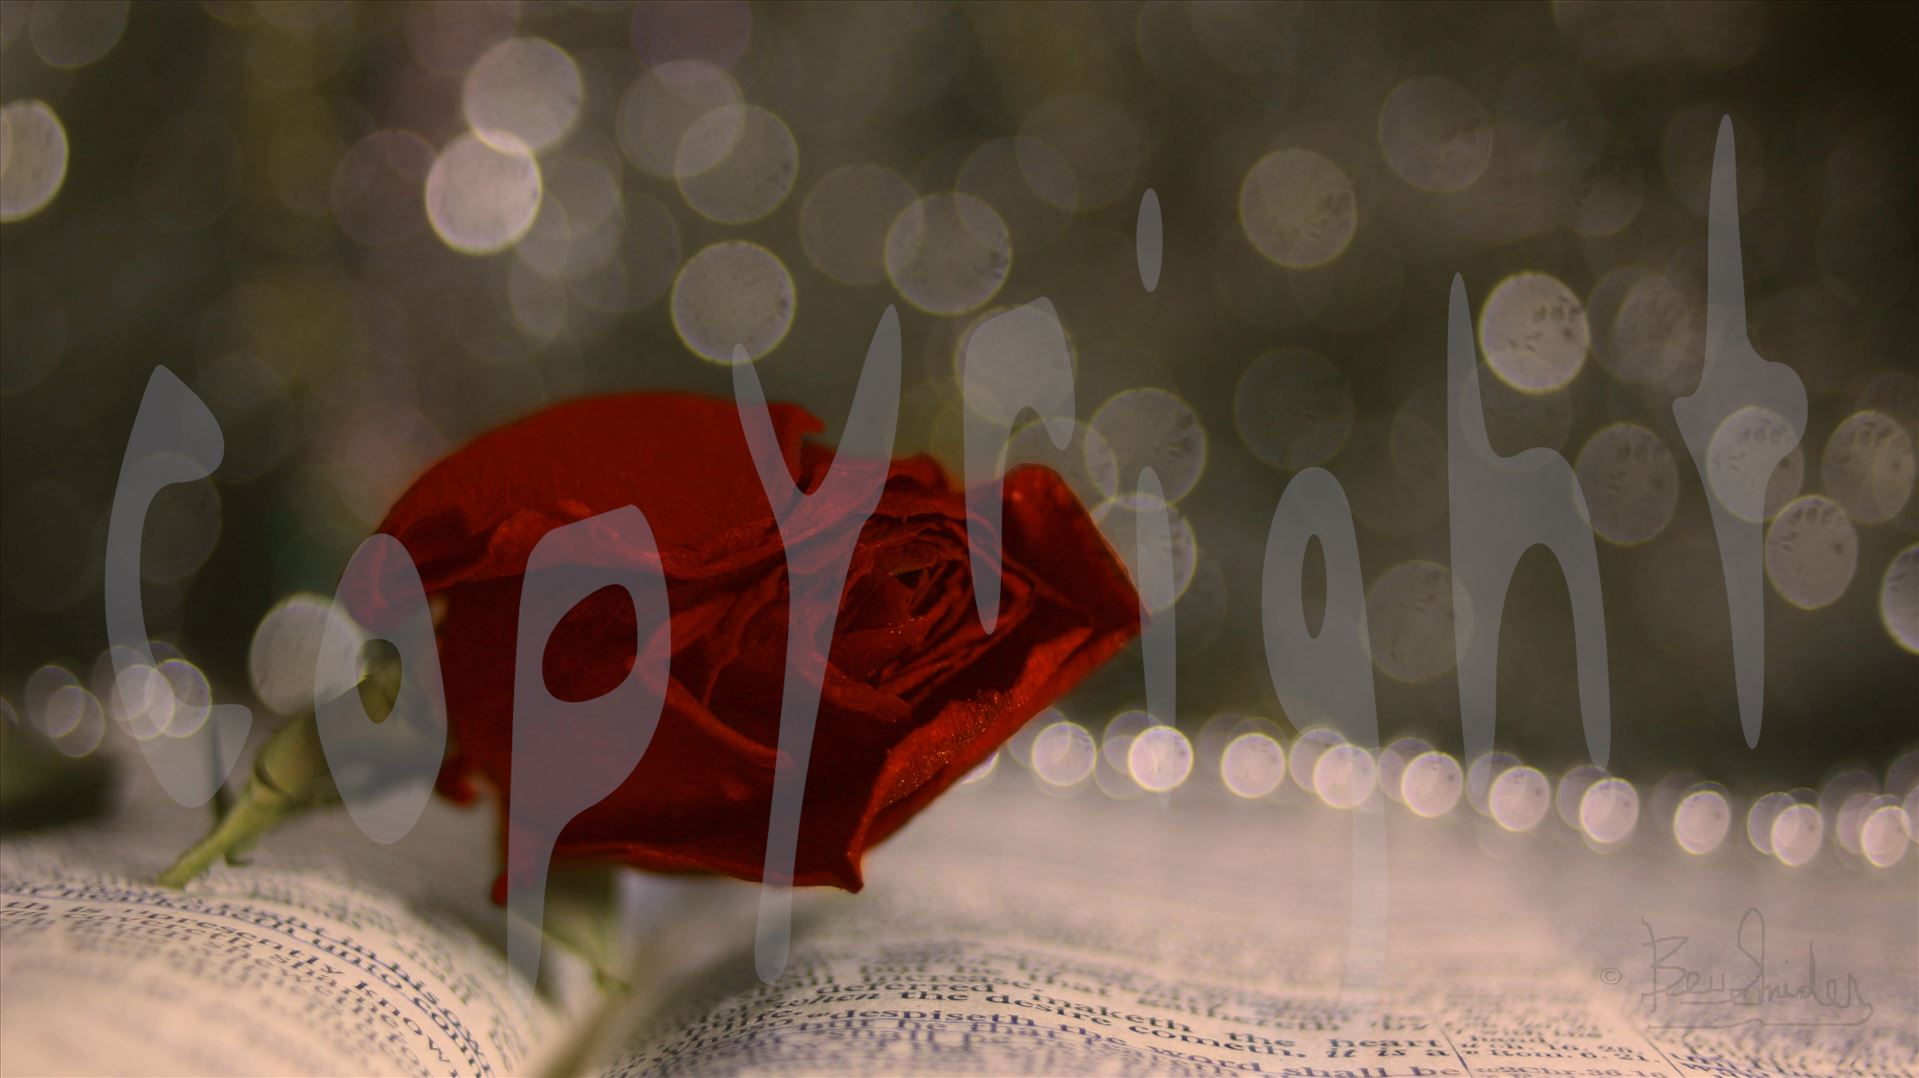 Red Rose 0992 - Red Rose on Bible with Bokeh by Snookies Place of Wildlife and Nature